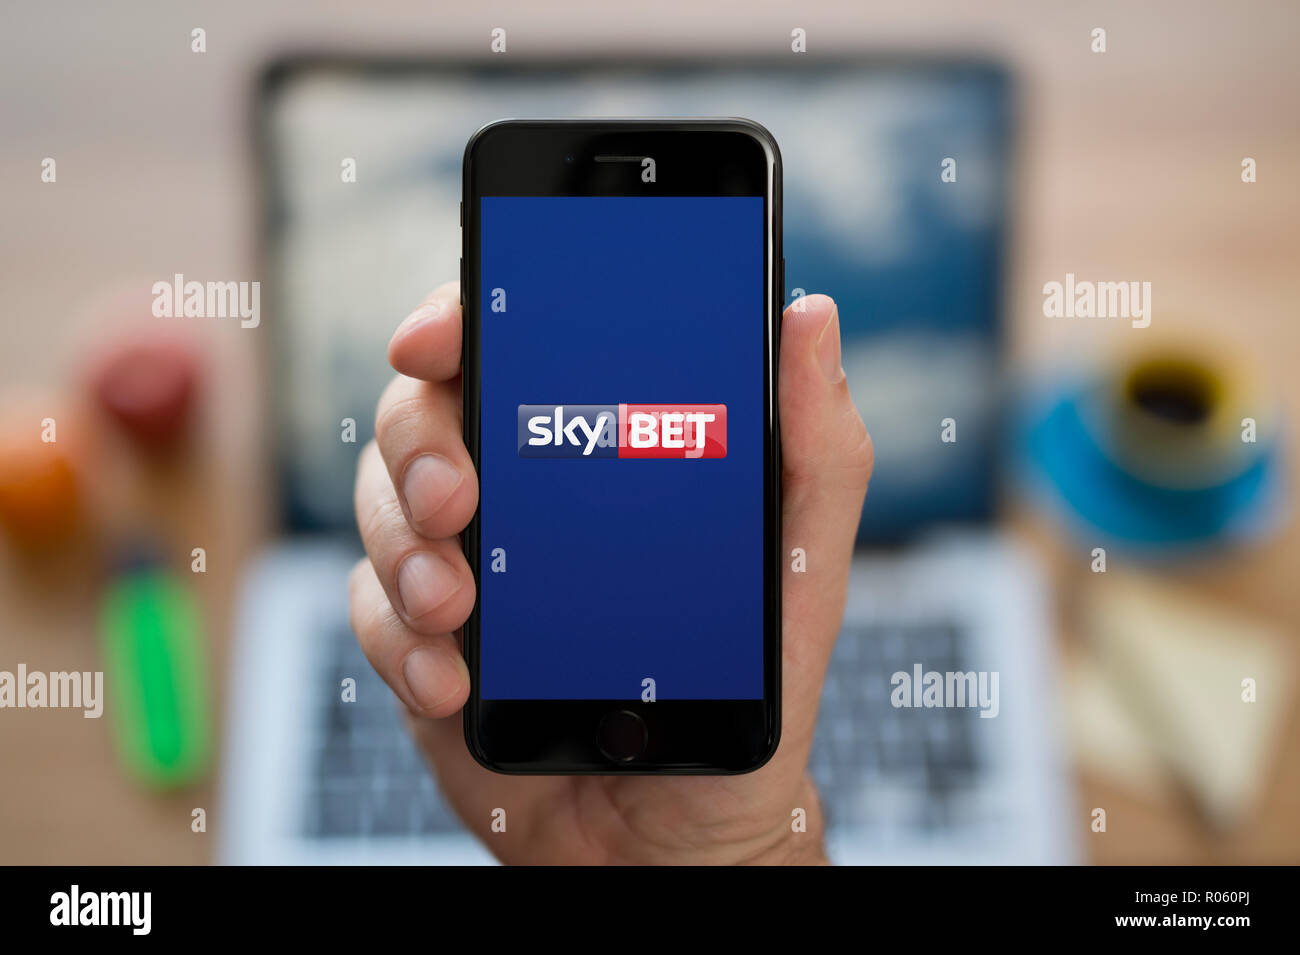 A man looks at his iPhone which displays the Sky Bet logo